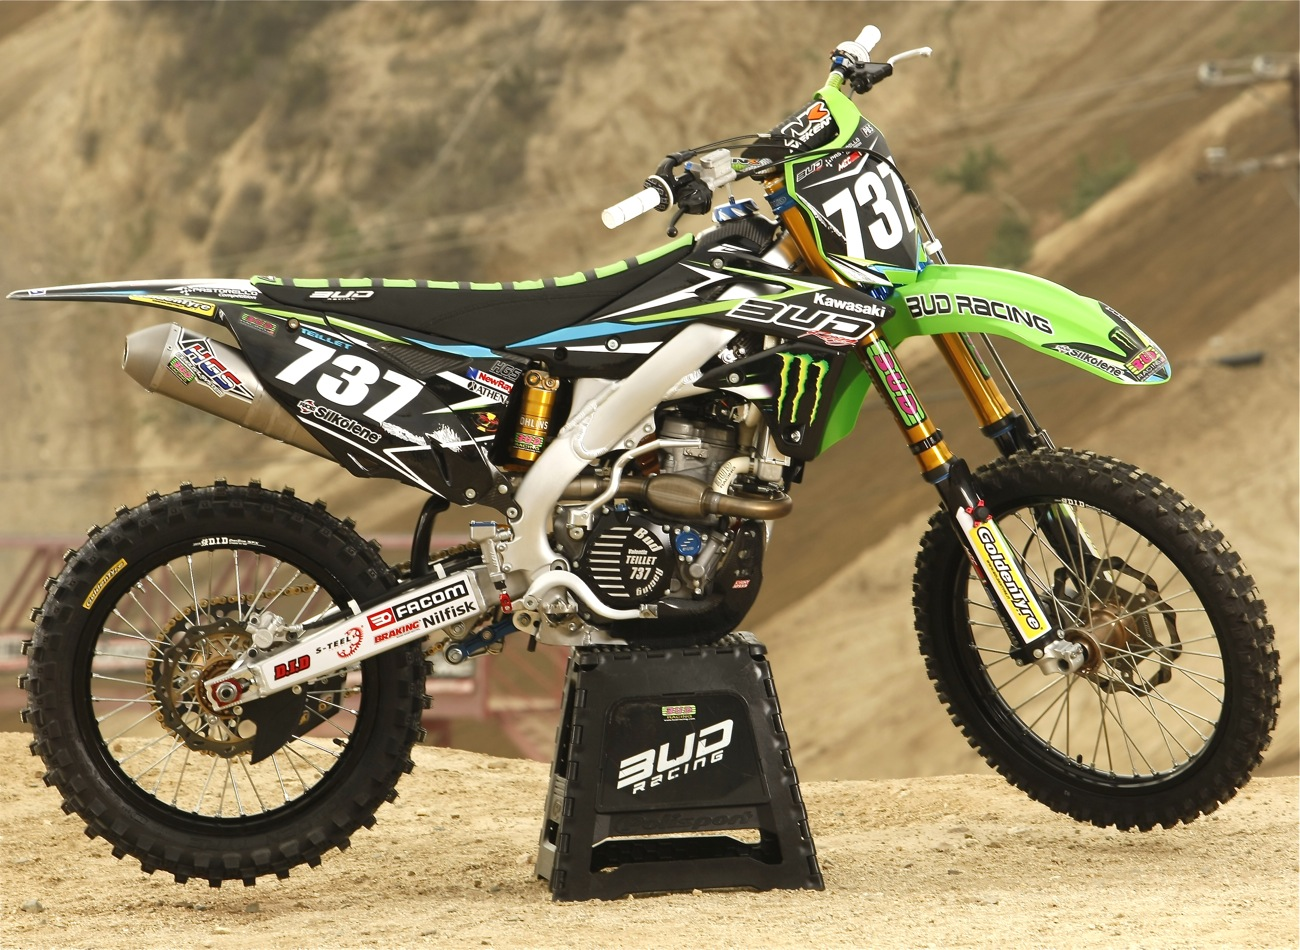 WE RIDE VALENTIN TEILLET'S BUD RACING KAWASAKI KX250F